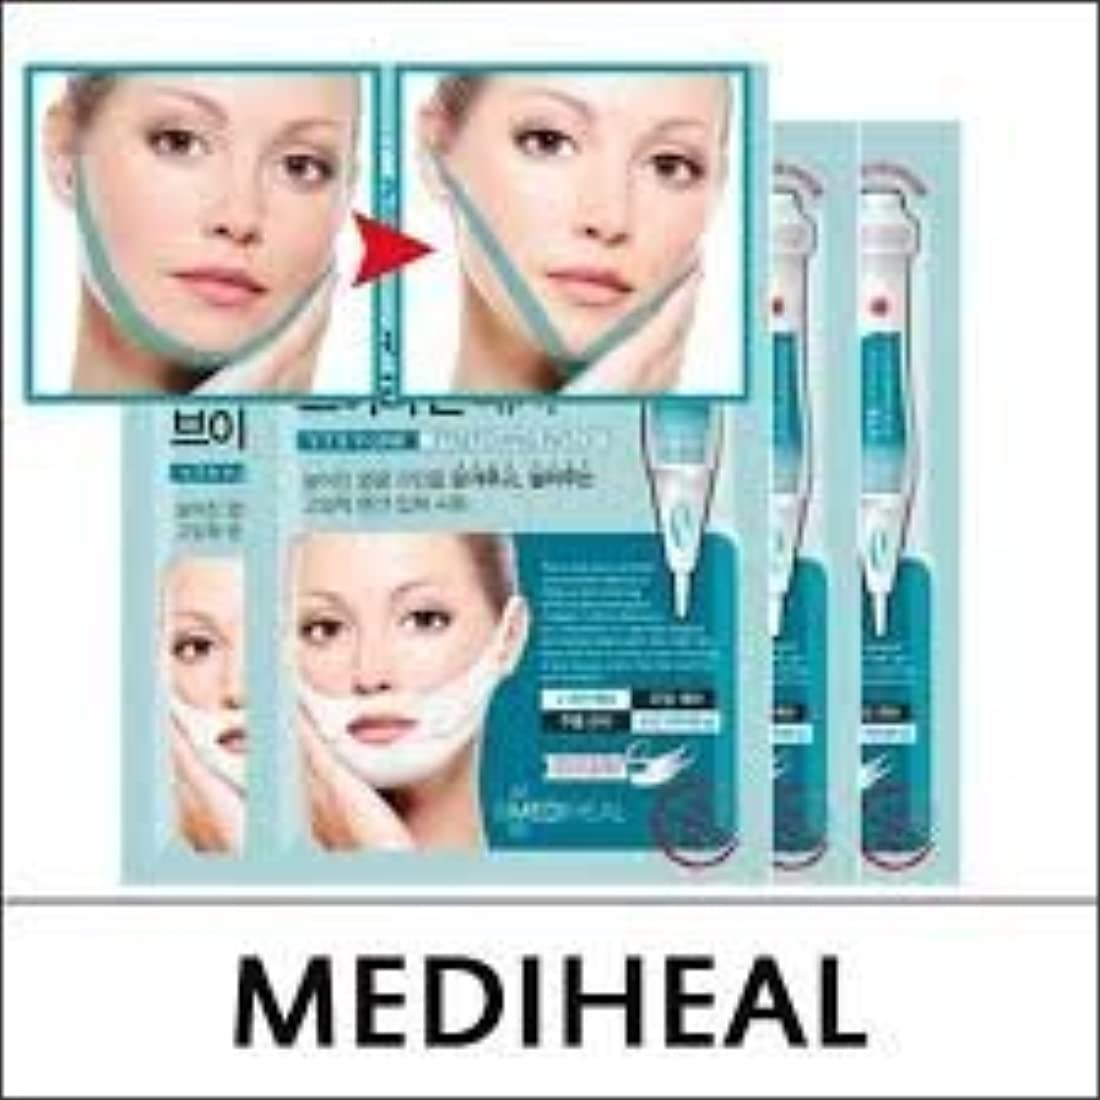 実験的事業発症MEDIHEAL VTR V Stretching Patch 20mlX4pcs/A.R.P Neck Patch/100% Authentic Korea Cosmetic (VTR V-Line Stretching...